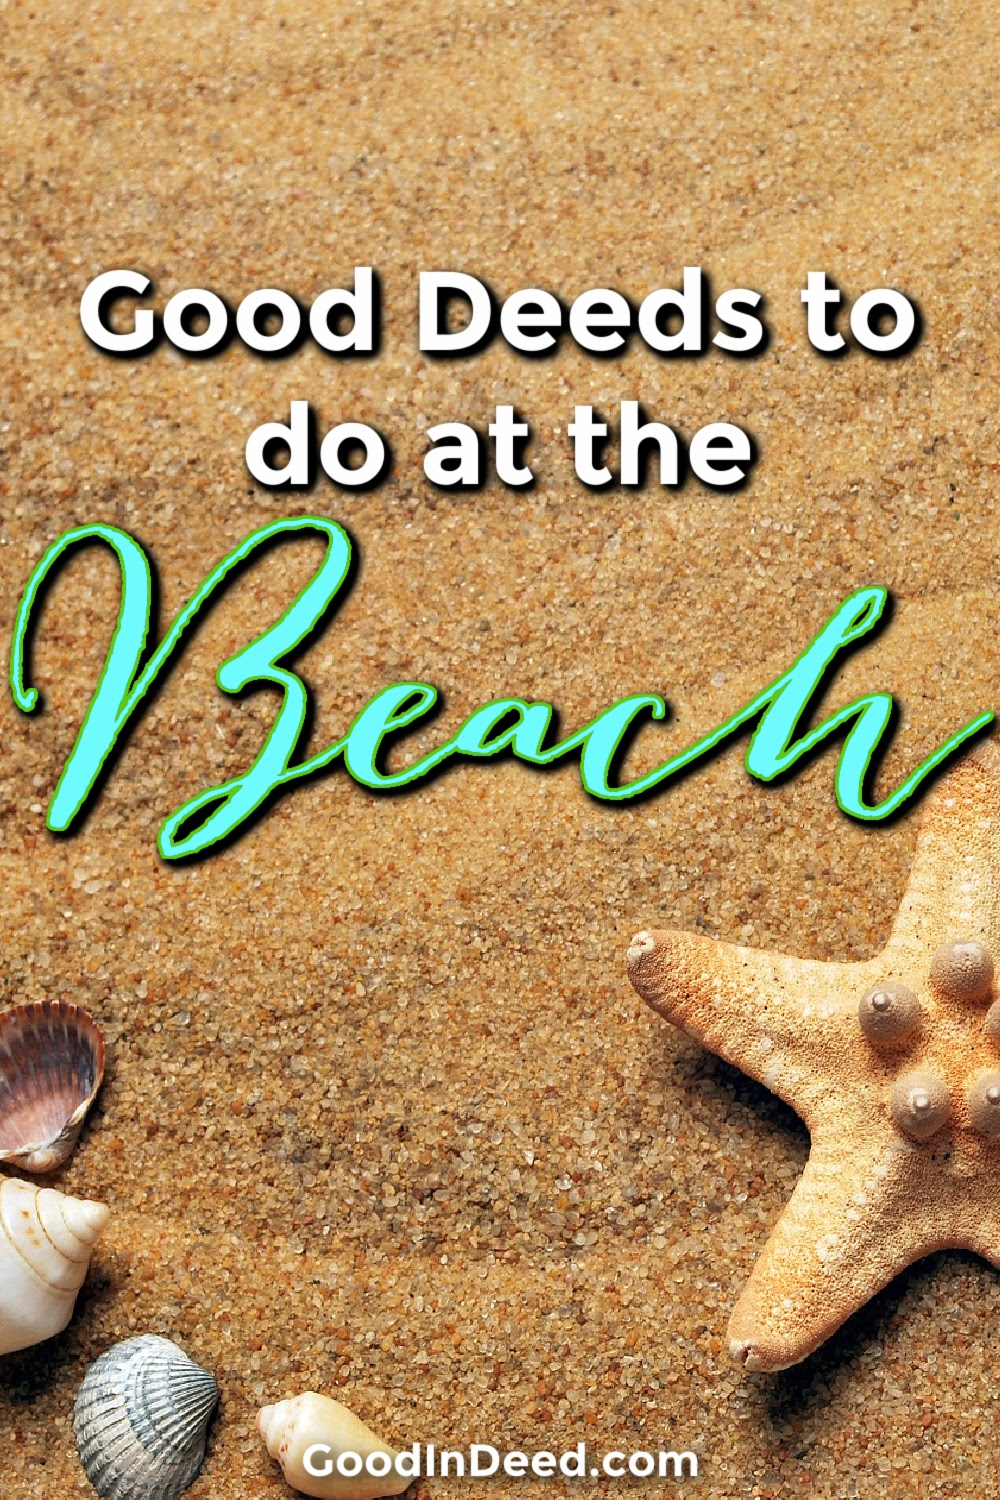 The best good deeds to do at the beach can be fun and help you enjoy your time even more knowing you made a difference.